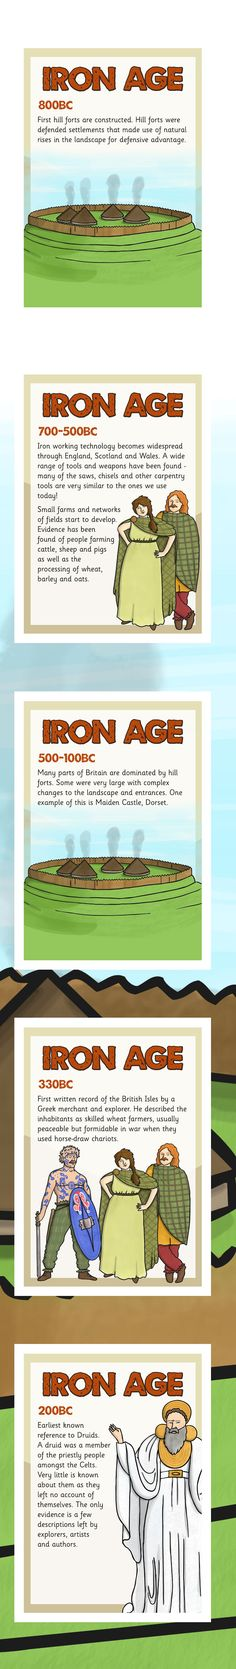 History Timelines- The Iron Age Timeline Posters Archaeology Prehistory jagers Primary History, History For Kids, History Class, Teaching History, World History, History Timeline, History Facts, History Posters, Story Of The World